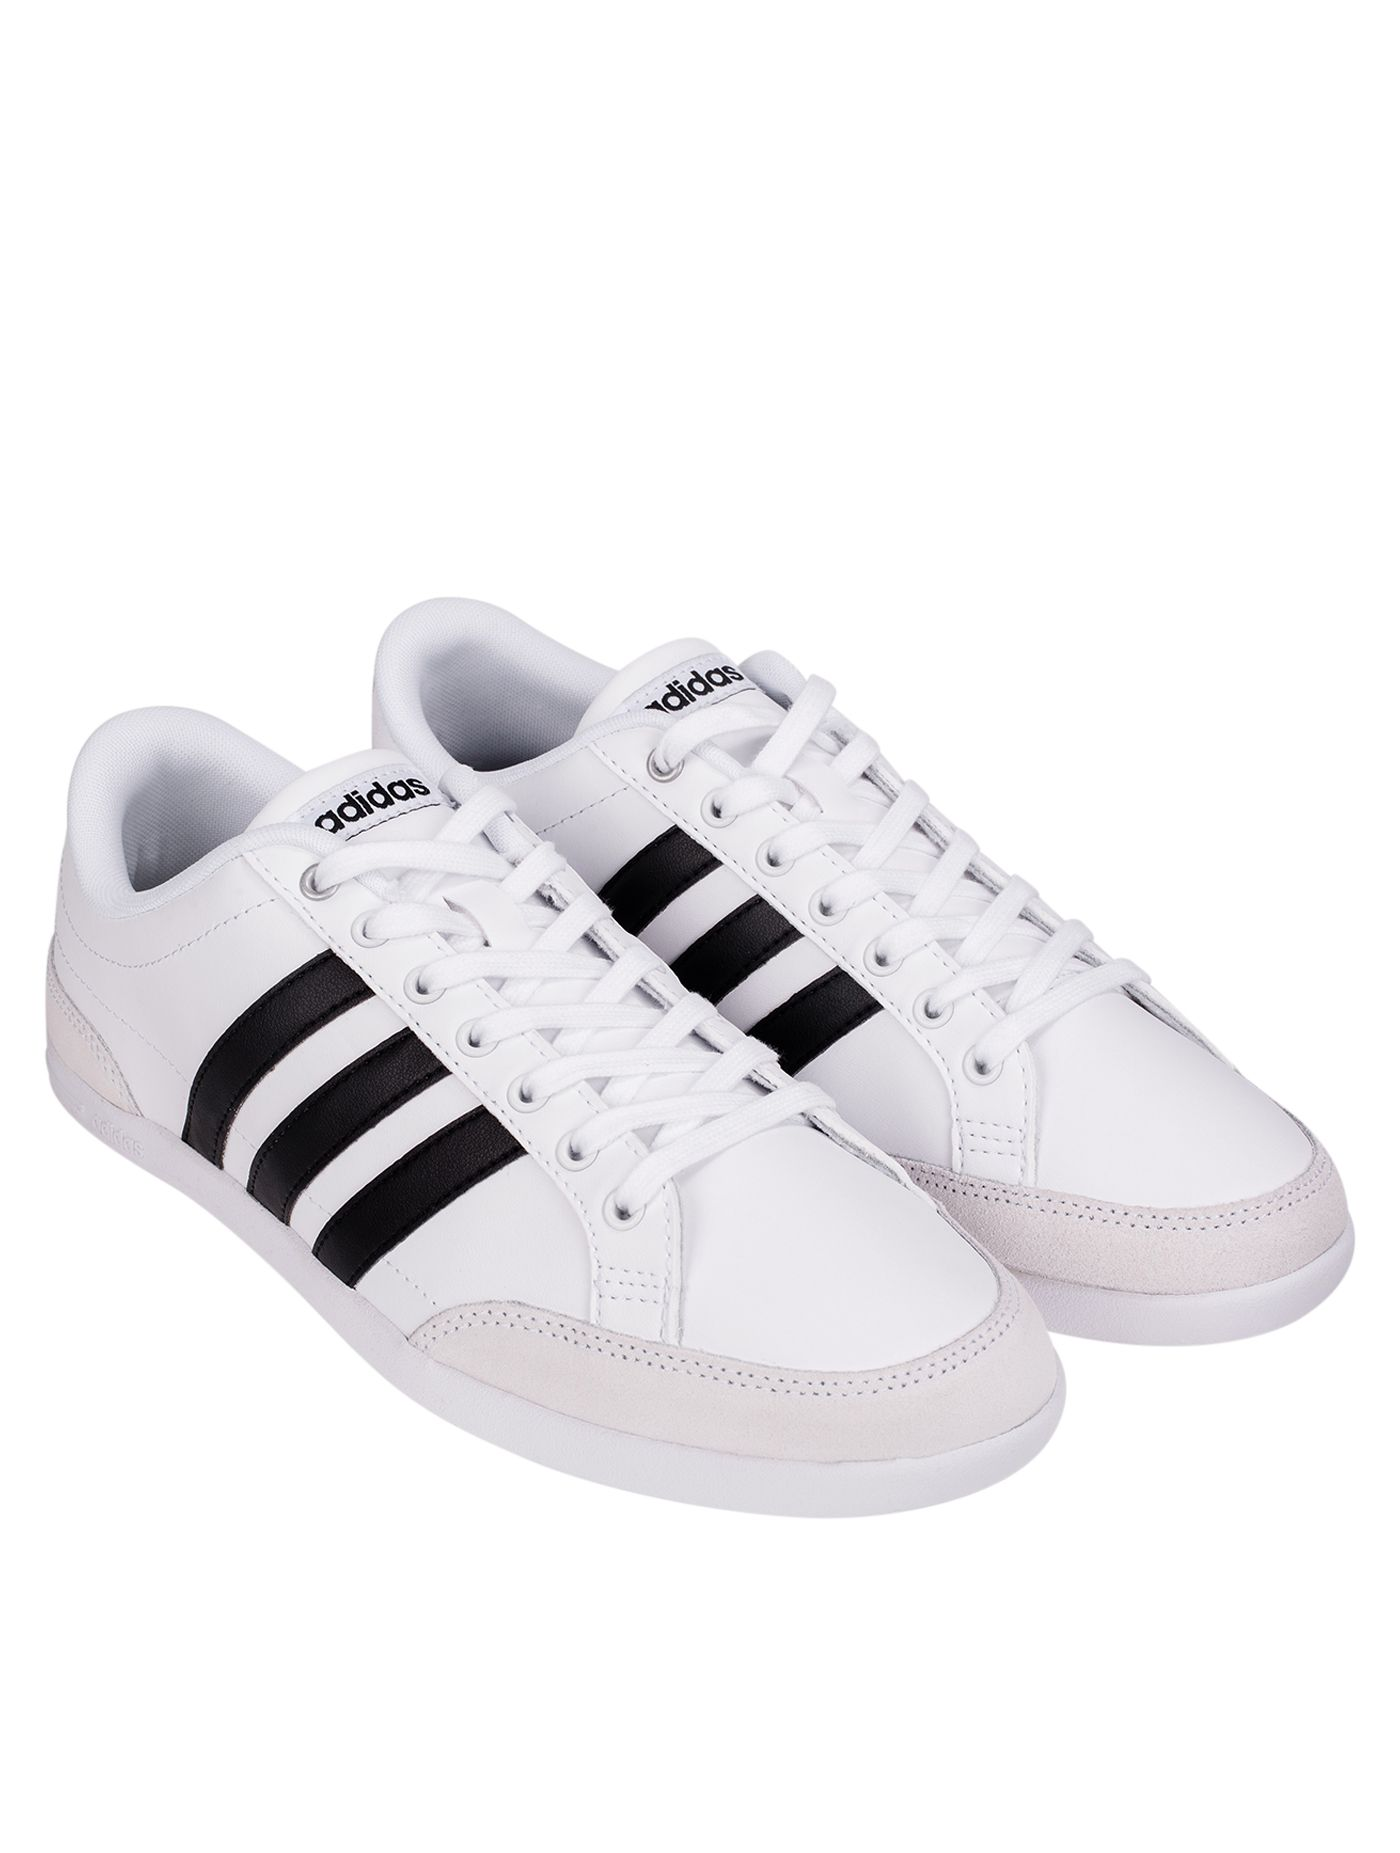 ADIDAS NEO Men's Casual shoes CAFLAIRE B74614 Size UK7 White